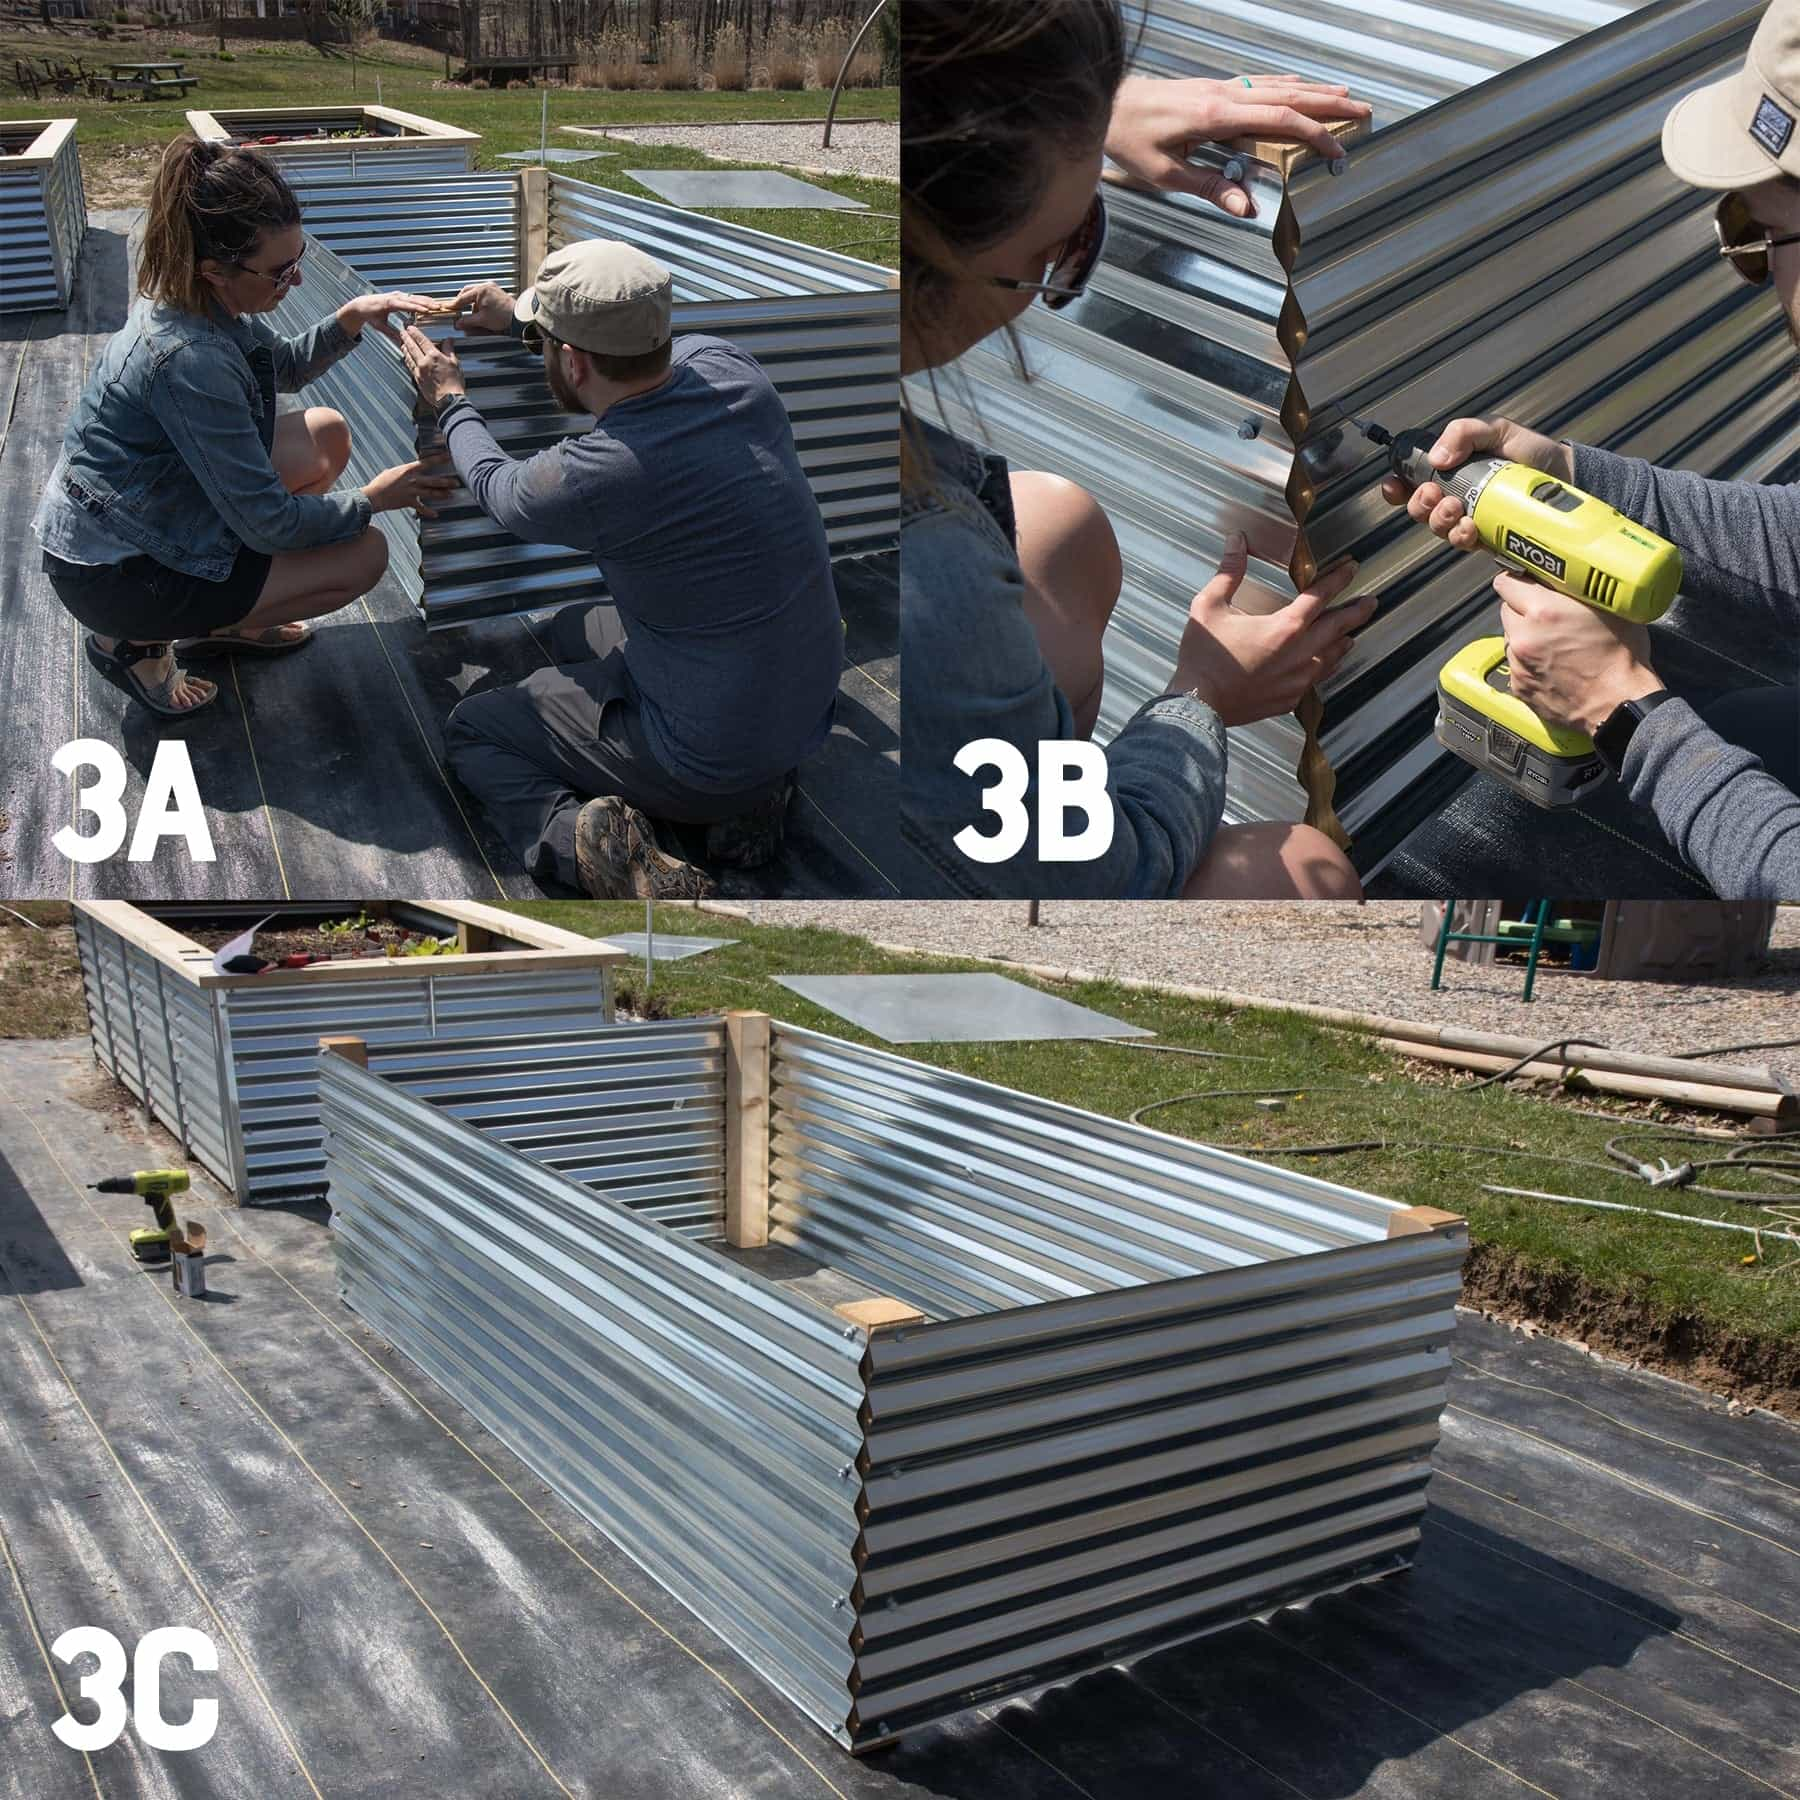 Three image collage of attaching the fourth side of a galvanized steel raised bed